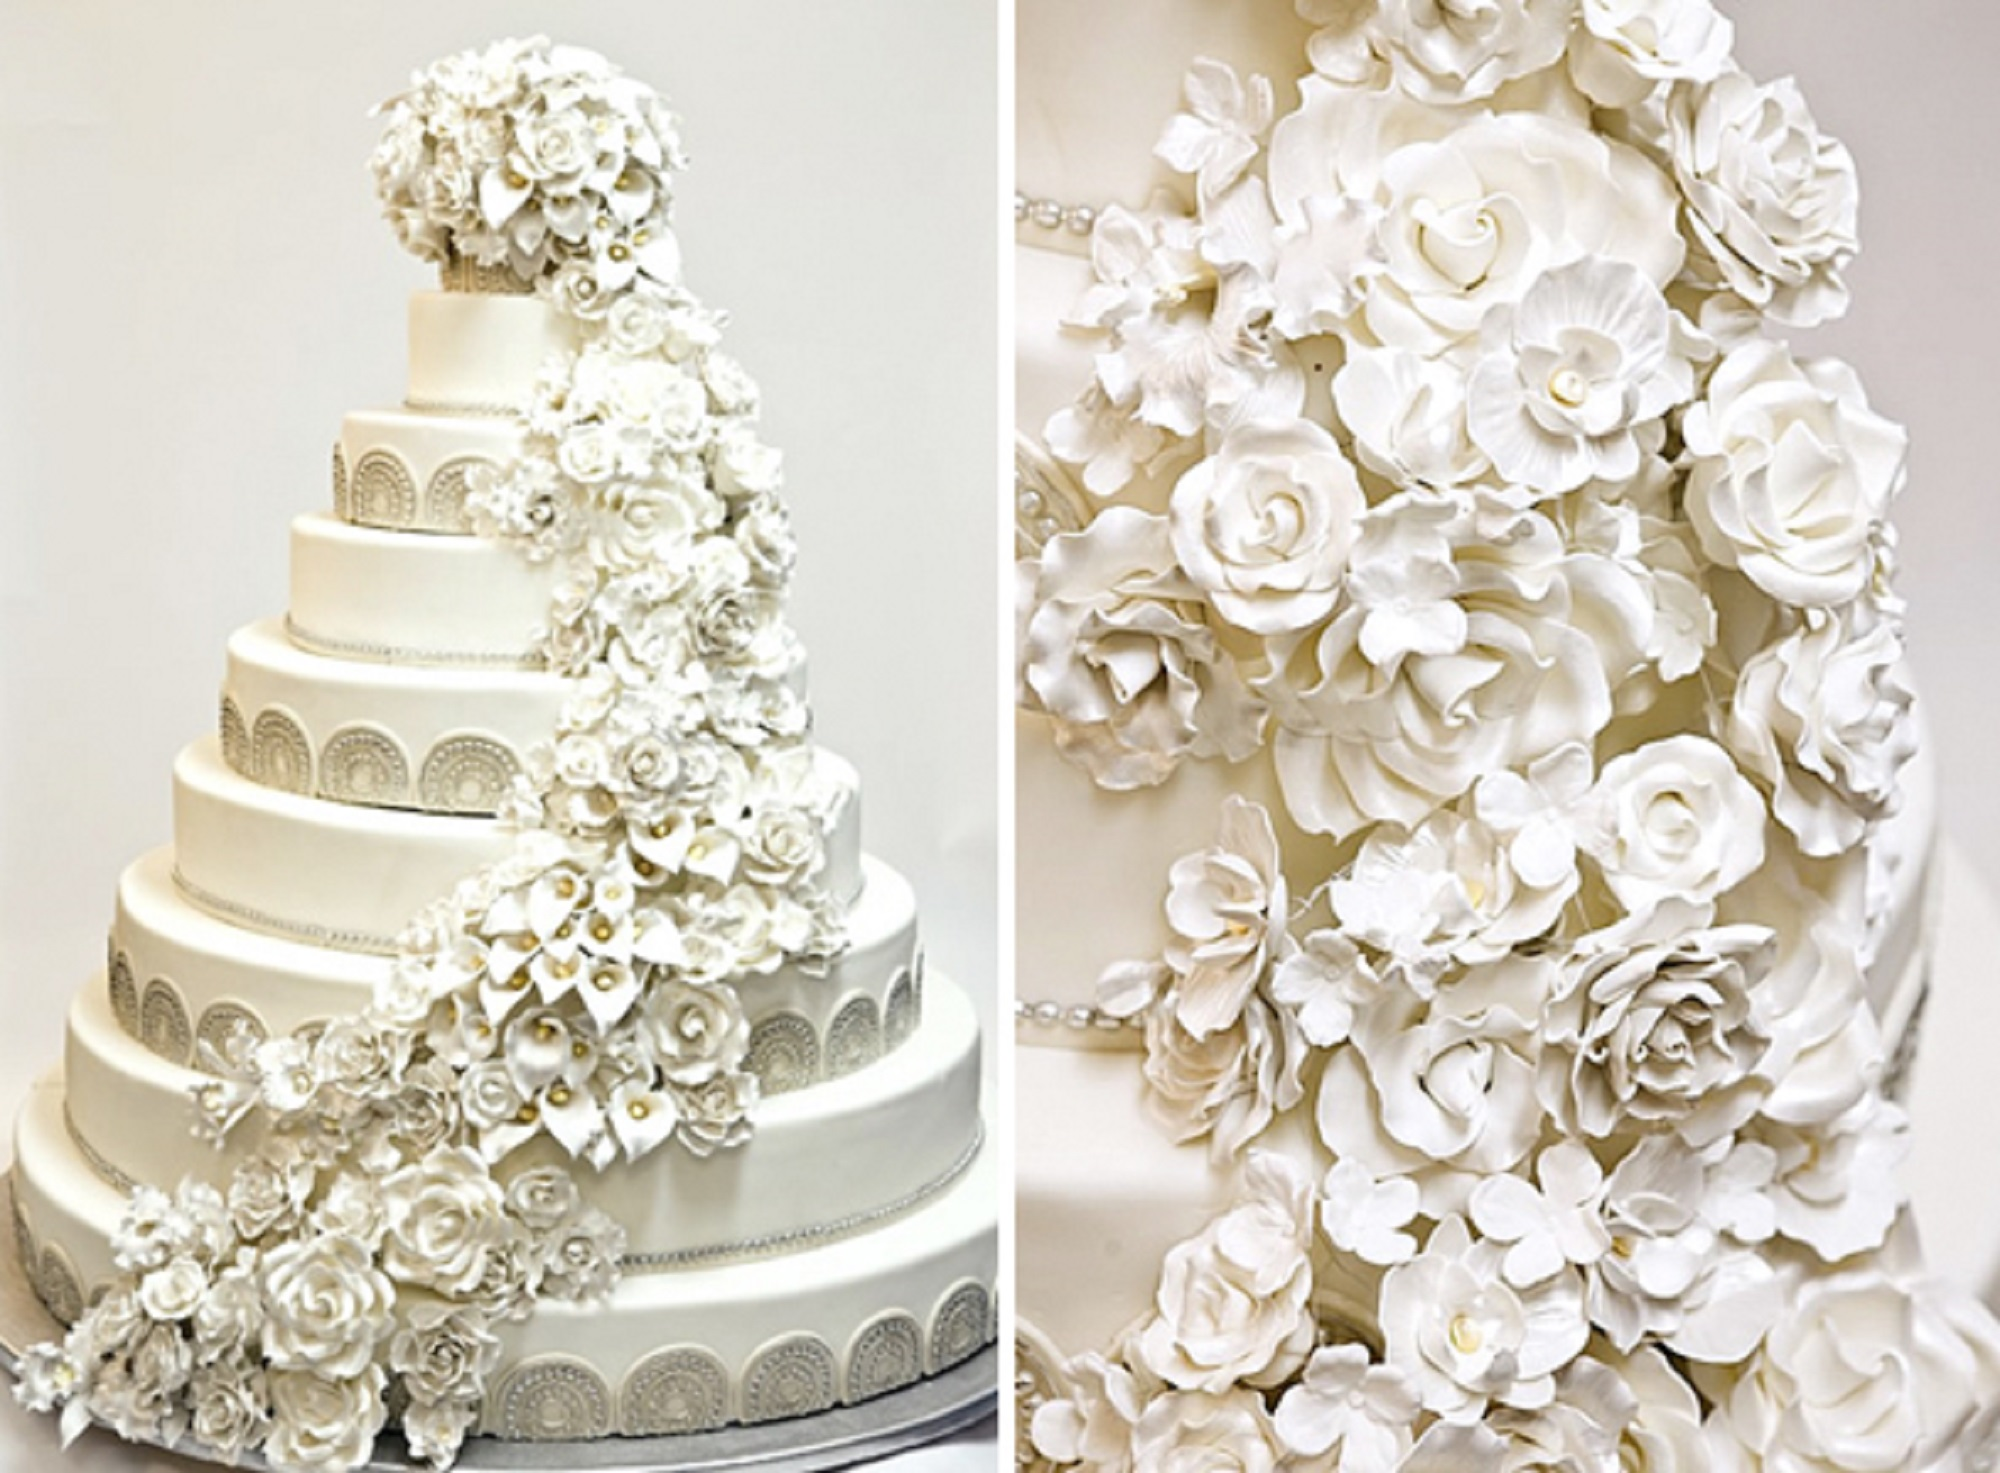 top 10 most expensive mouthwatering wedding cakes therichest. Black Bedroom Furniture Sets. Home Design Ideas